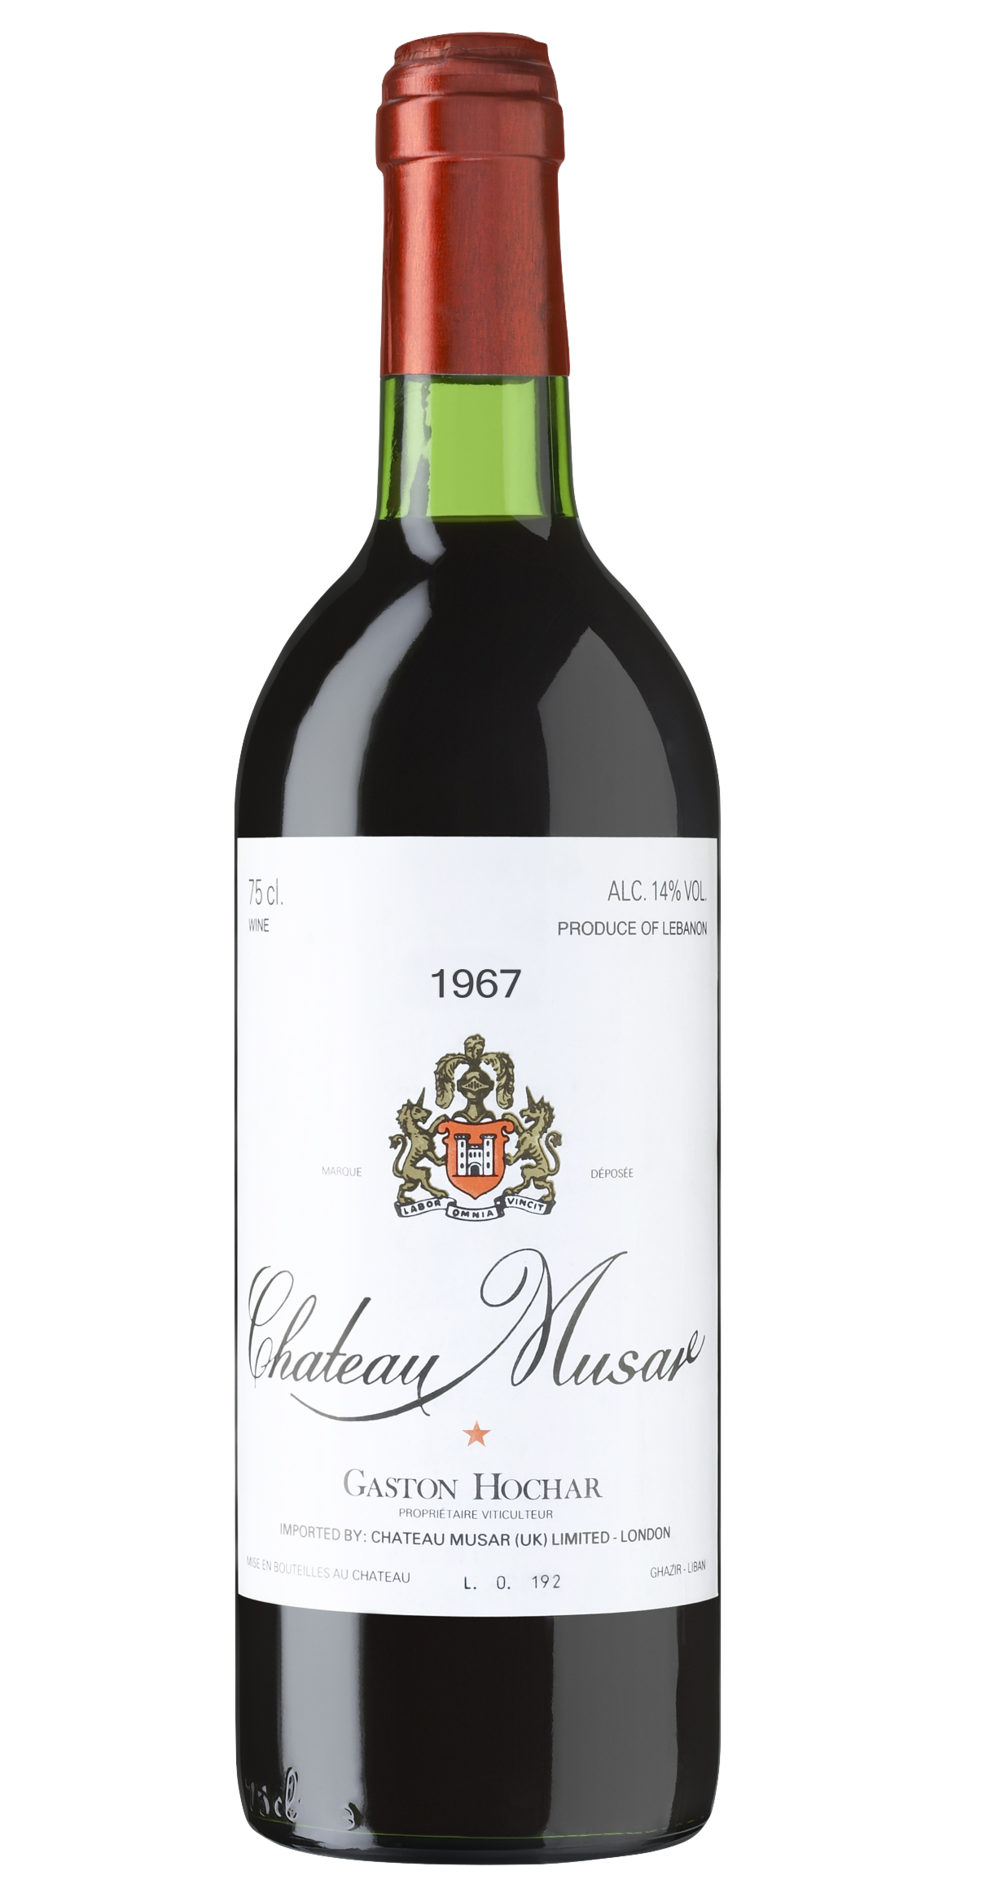 Chateau Musar 1967 - amazingly, still available in limited quantities